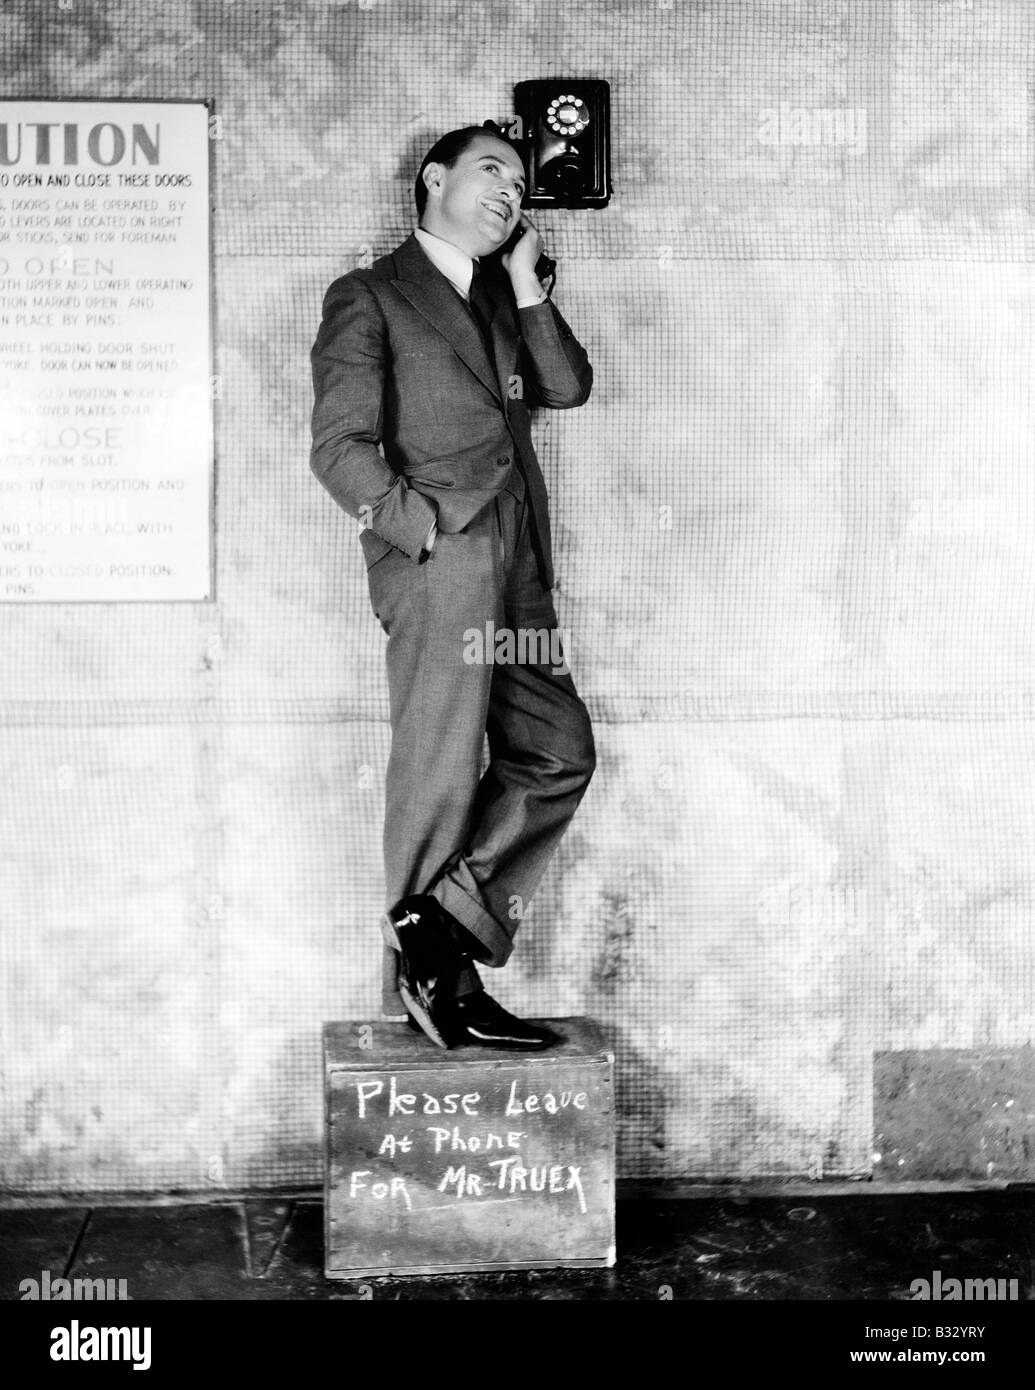 Man standing on a box to reach the telephone - Stock Image